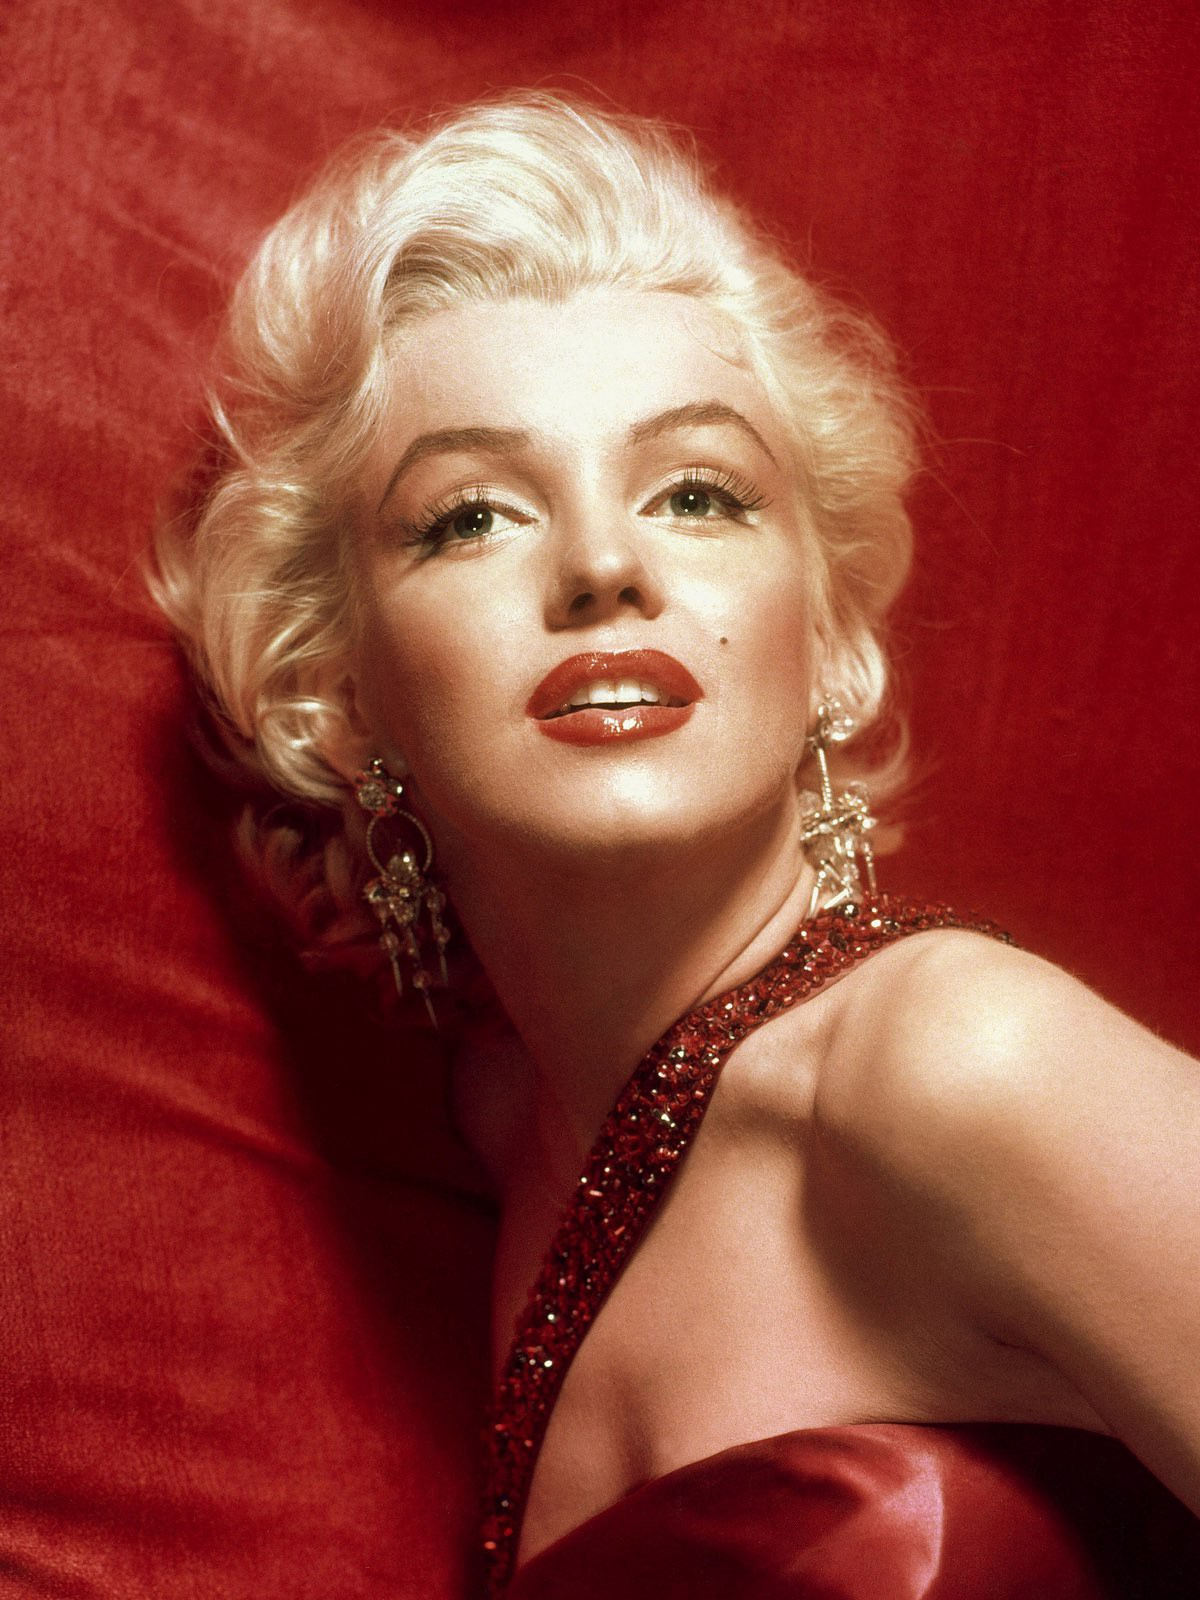 Marilyn Monroe was a movie icon by the time of her death in 1962 (credit: 1950sUnlimited)